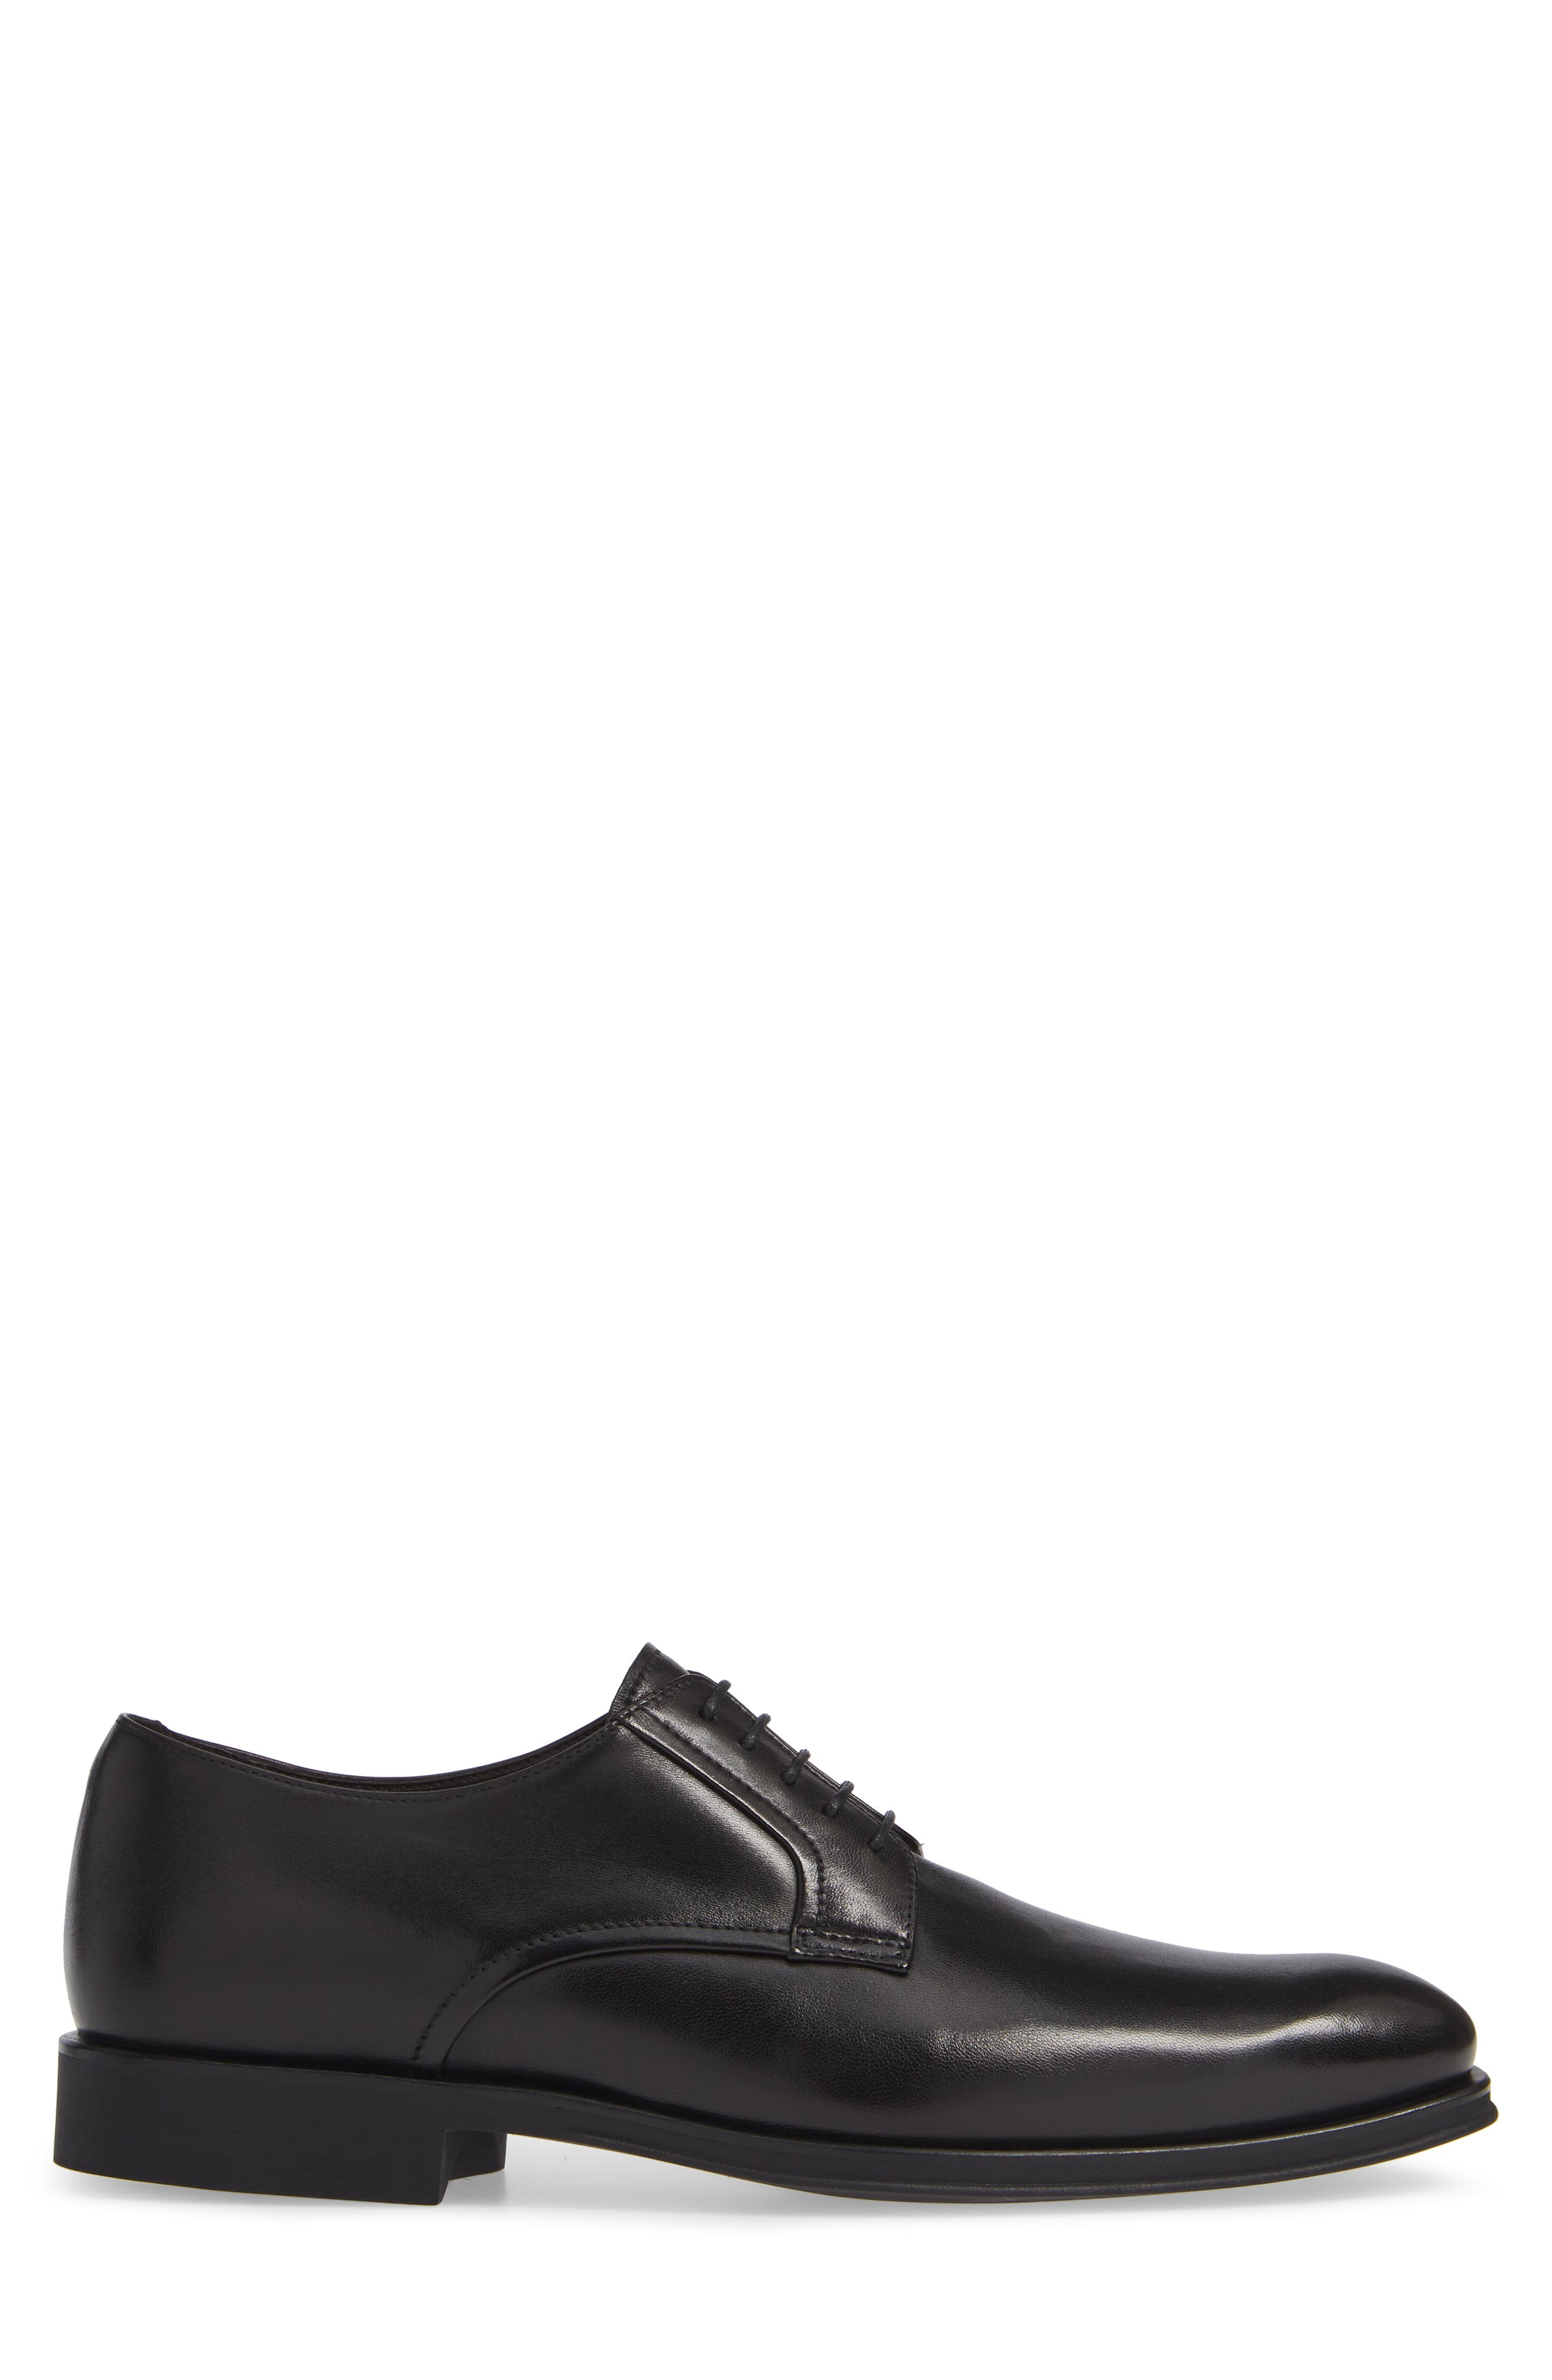 MS Zurich Oxford,                             Alternate thumbnail 3, color,                             BLACK LEATHER